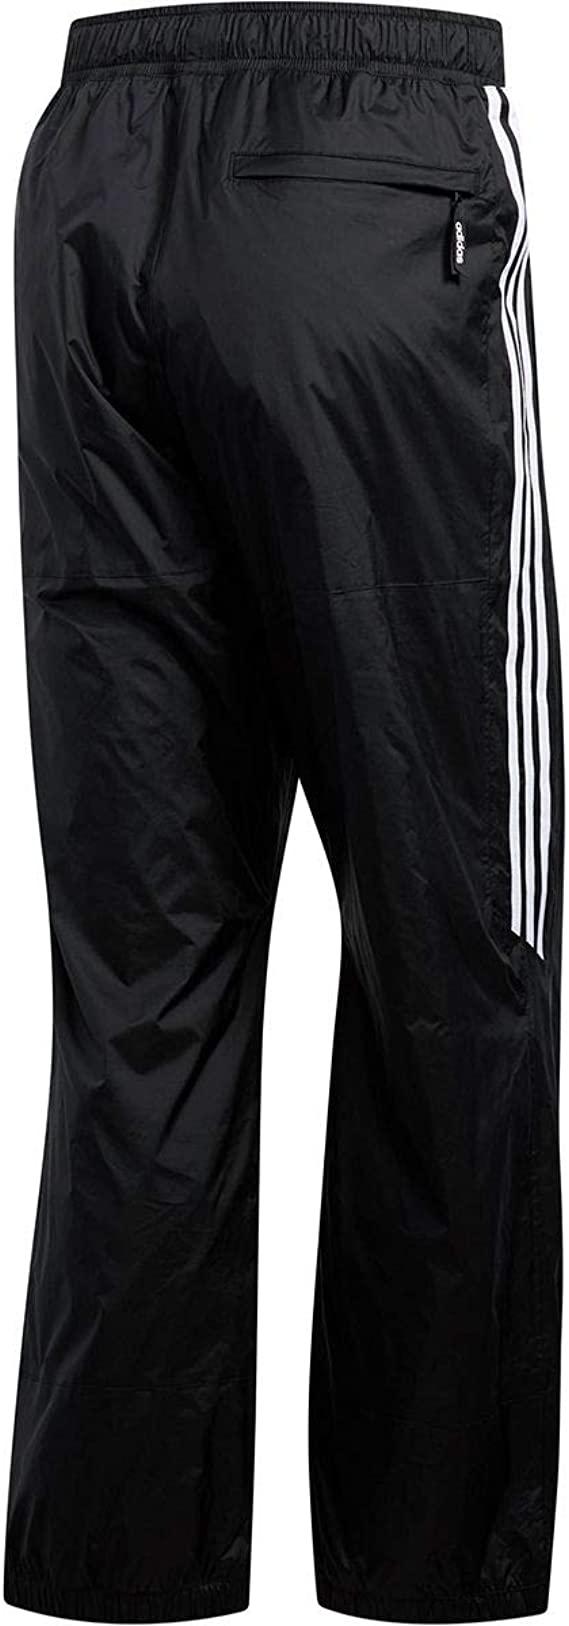 adidas Skateboarding Mens Slopetrotter Pants